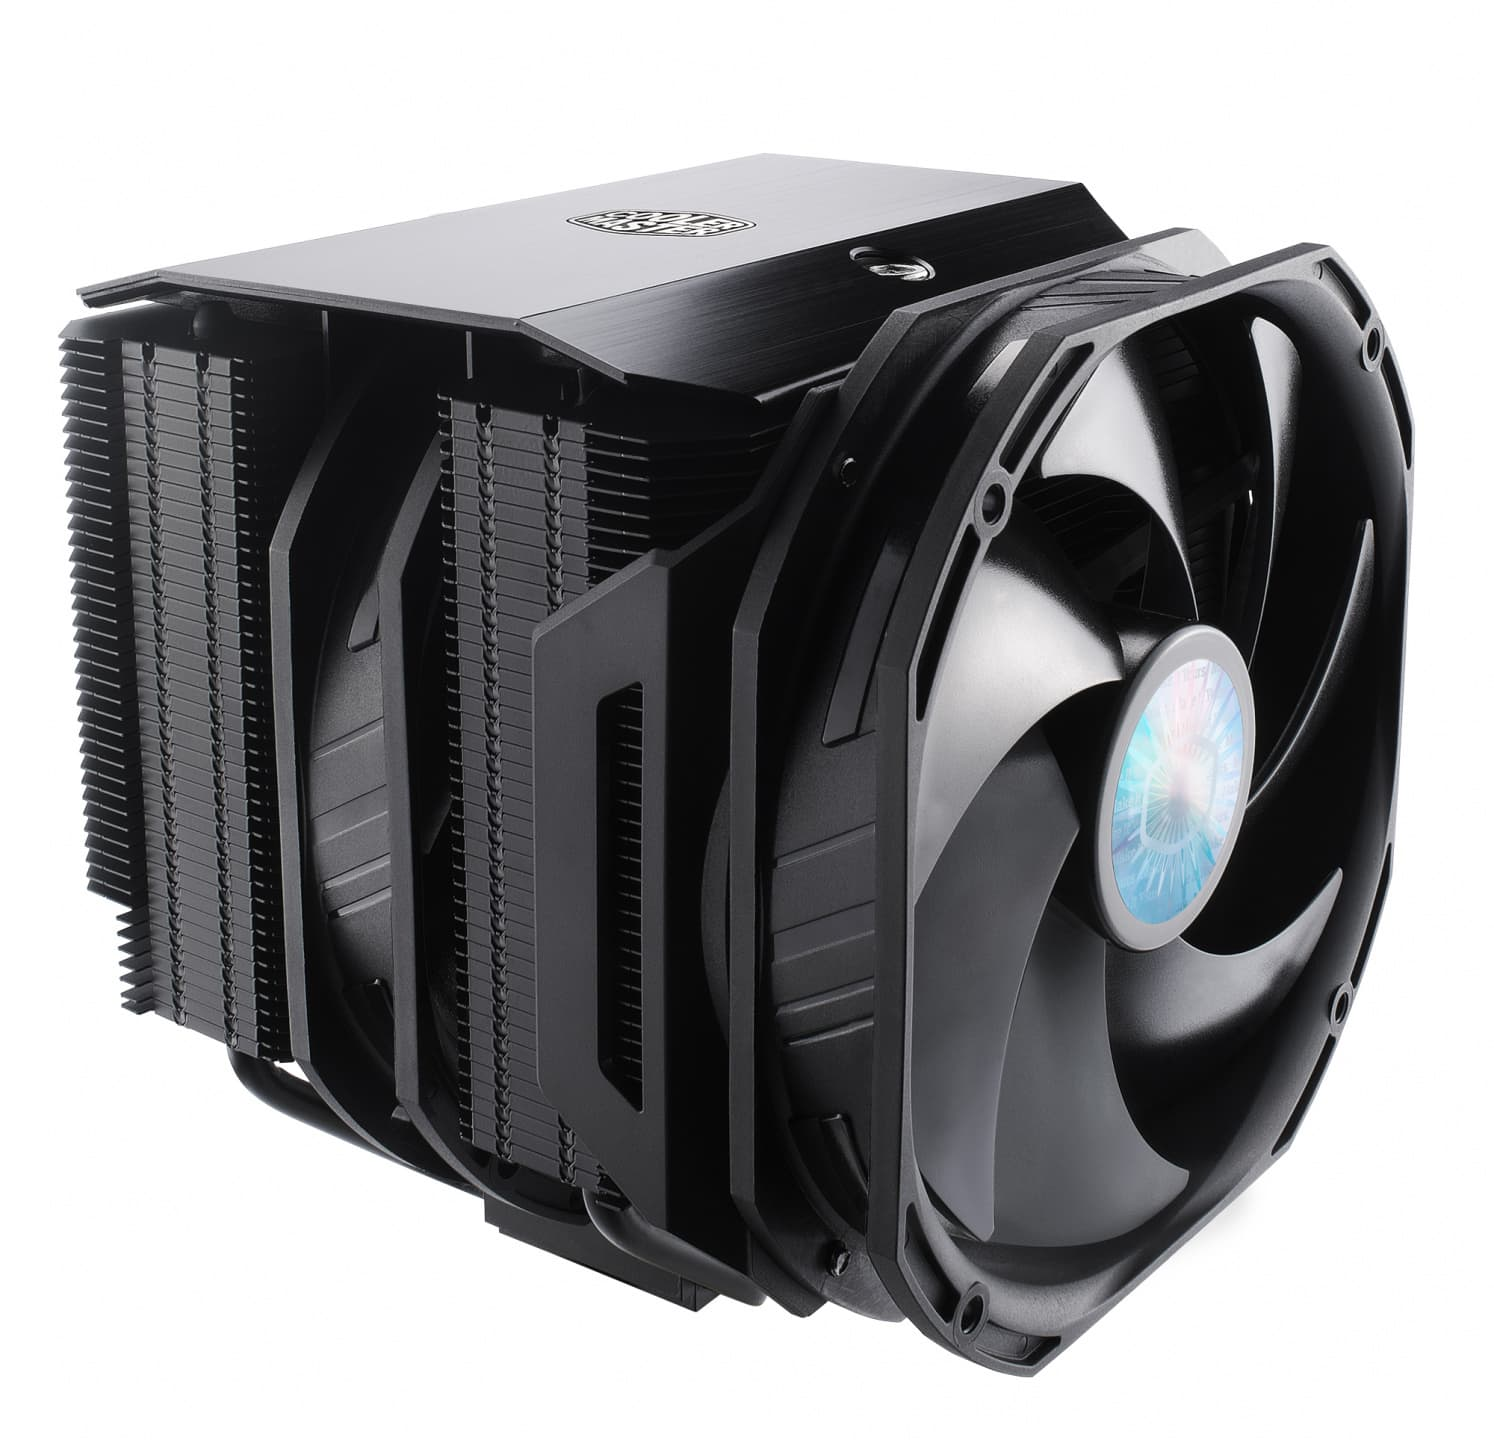 Cooler Master presents new flagship among coolers